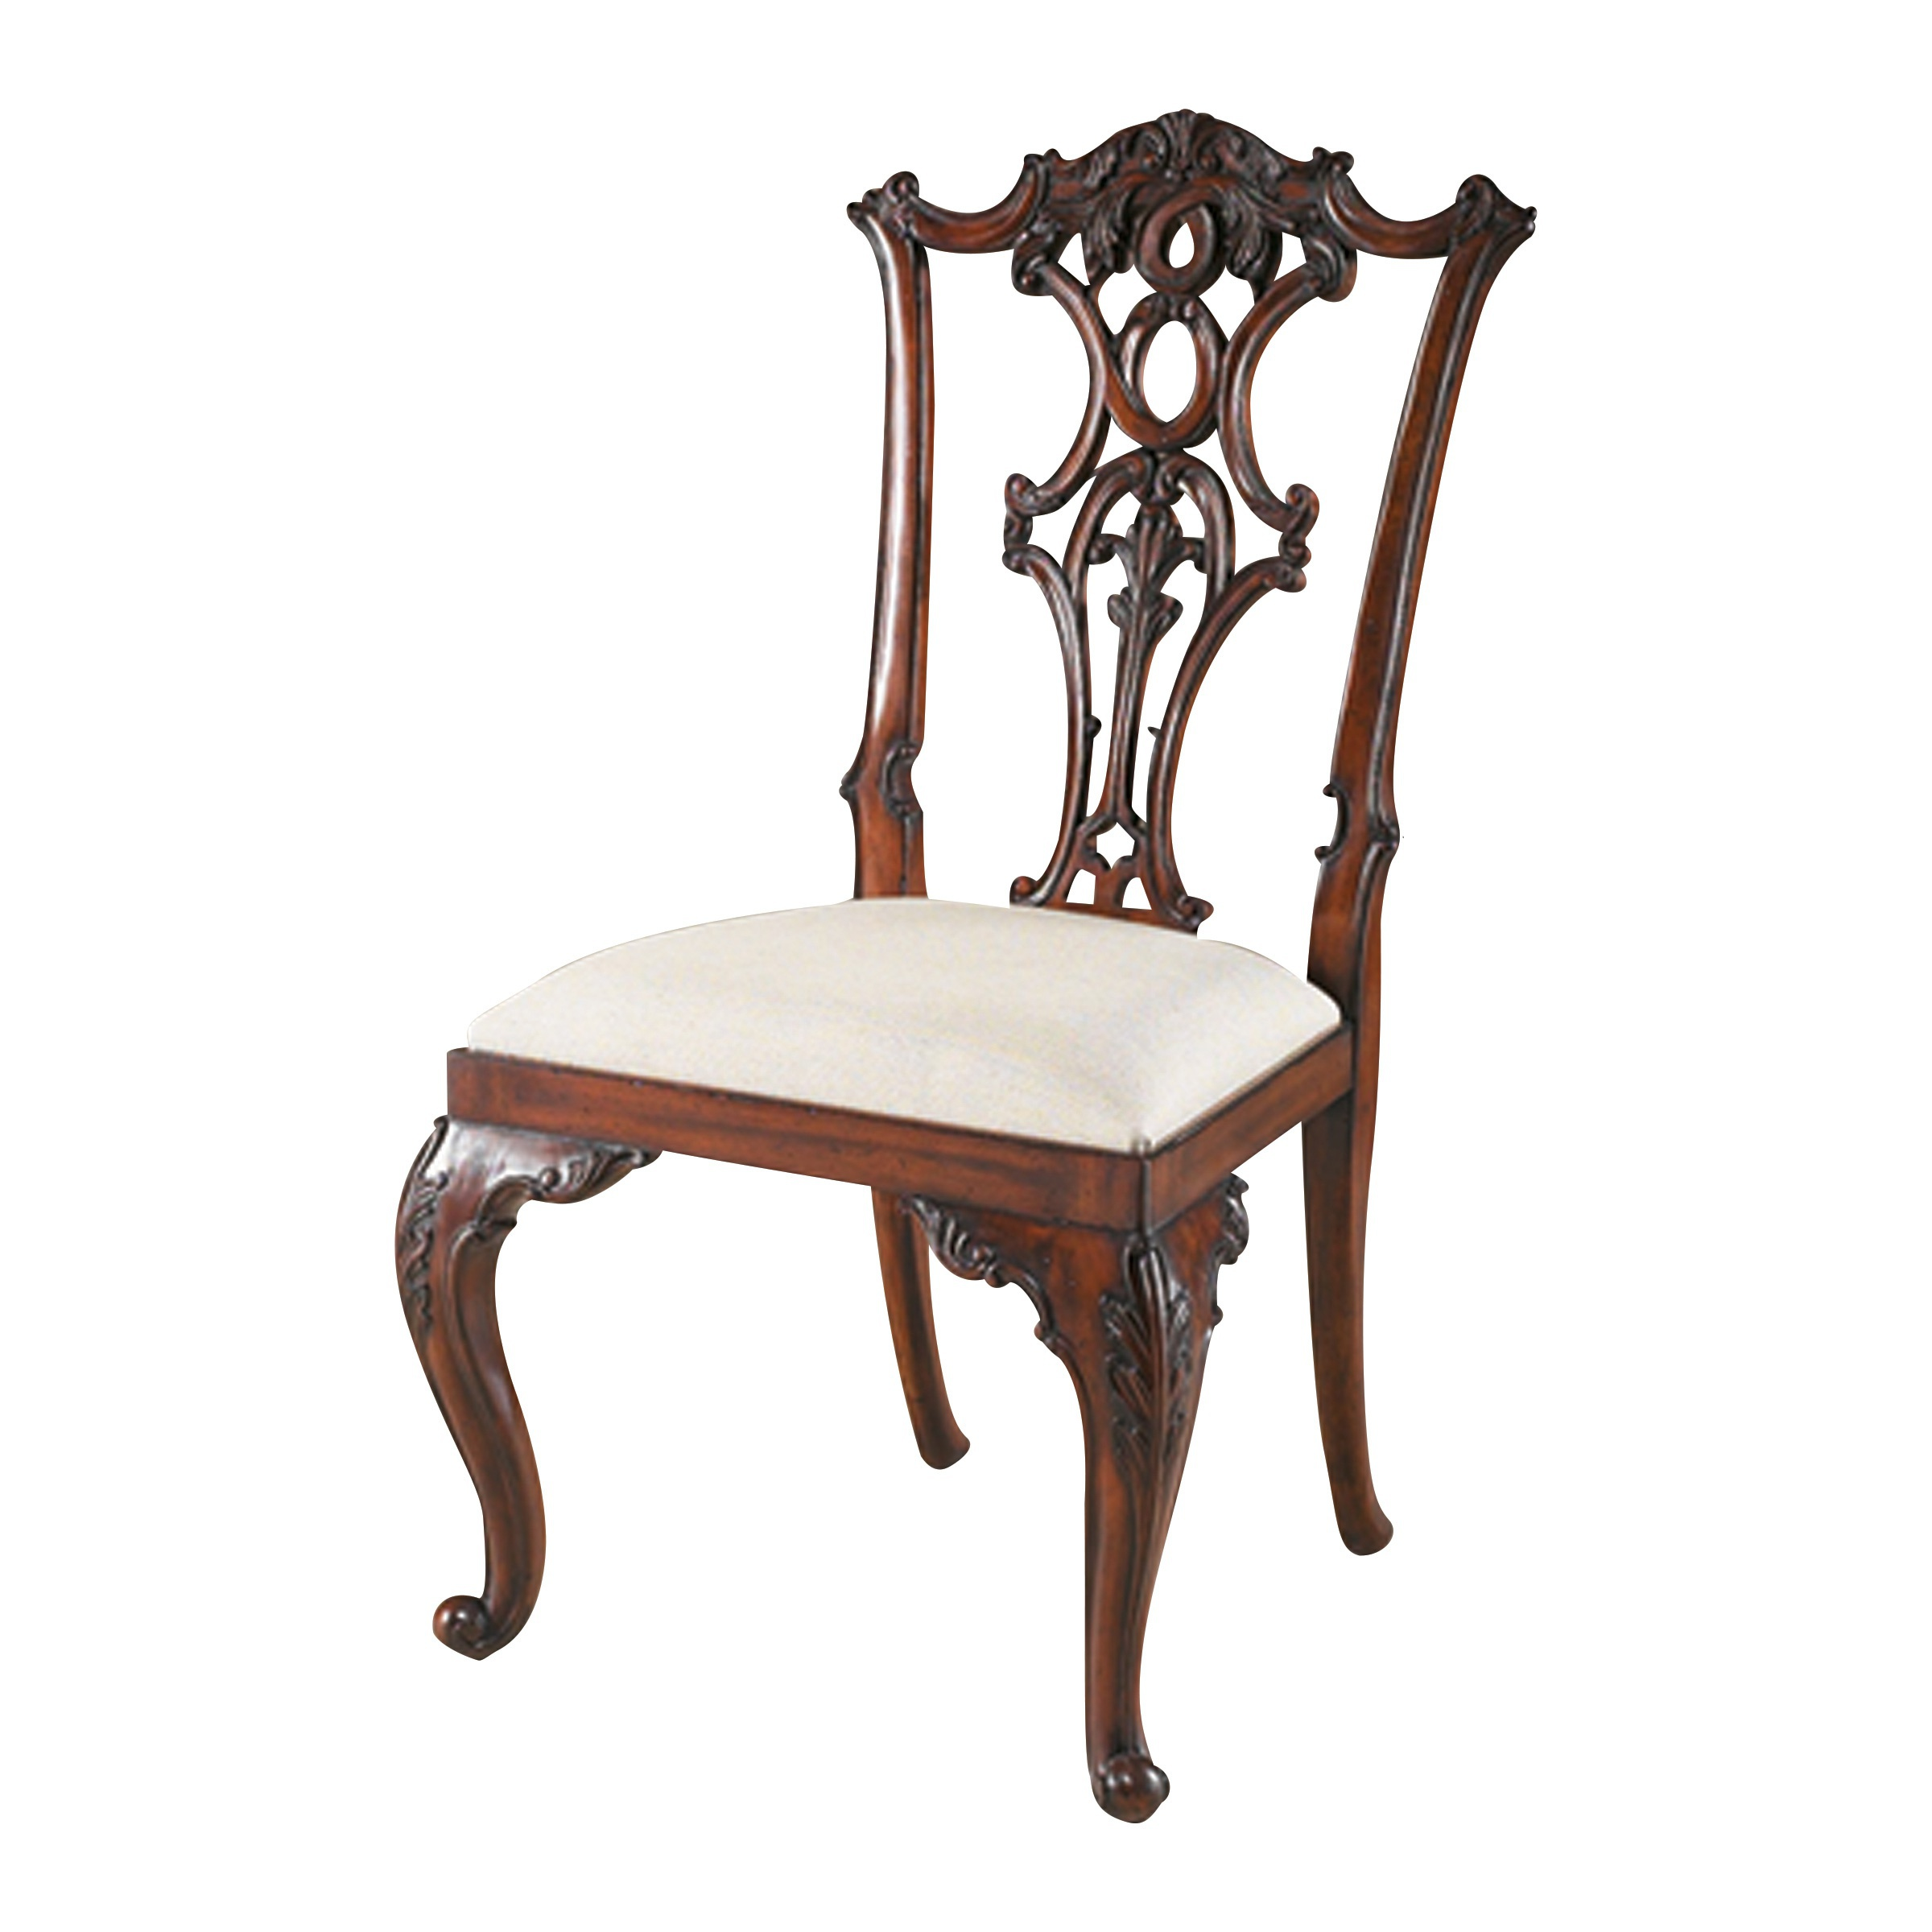 Chair Mahogany With A High Back Maitland Smith Luxury Furniture Mr